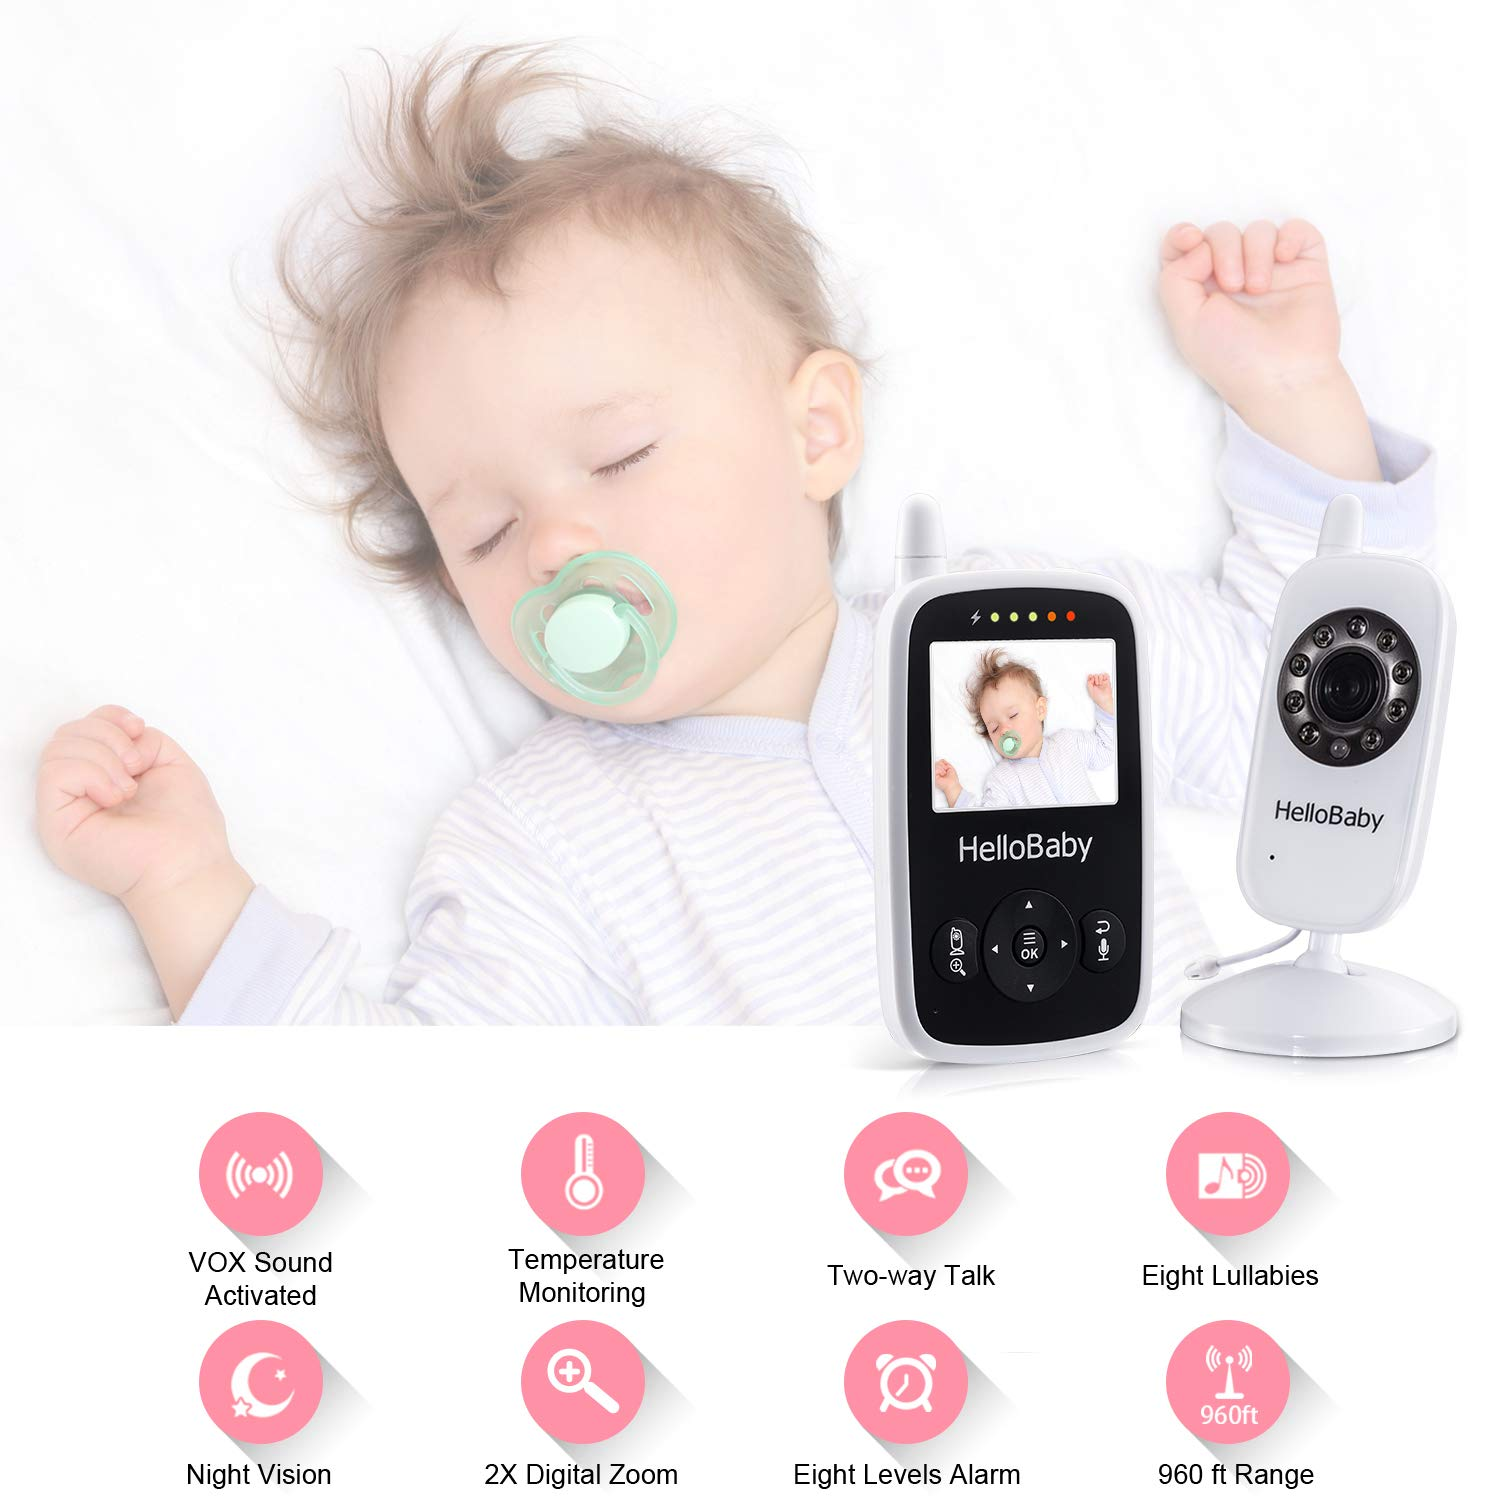 HelloBaby 2.4inch Digital Color LCD Screen Baby Monitor with up to 900 ft of Range, Infrared Night Vision, VOX, Two Way Audio and Alarm System Setting